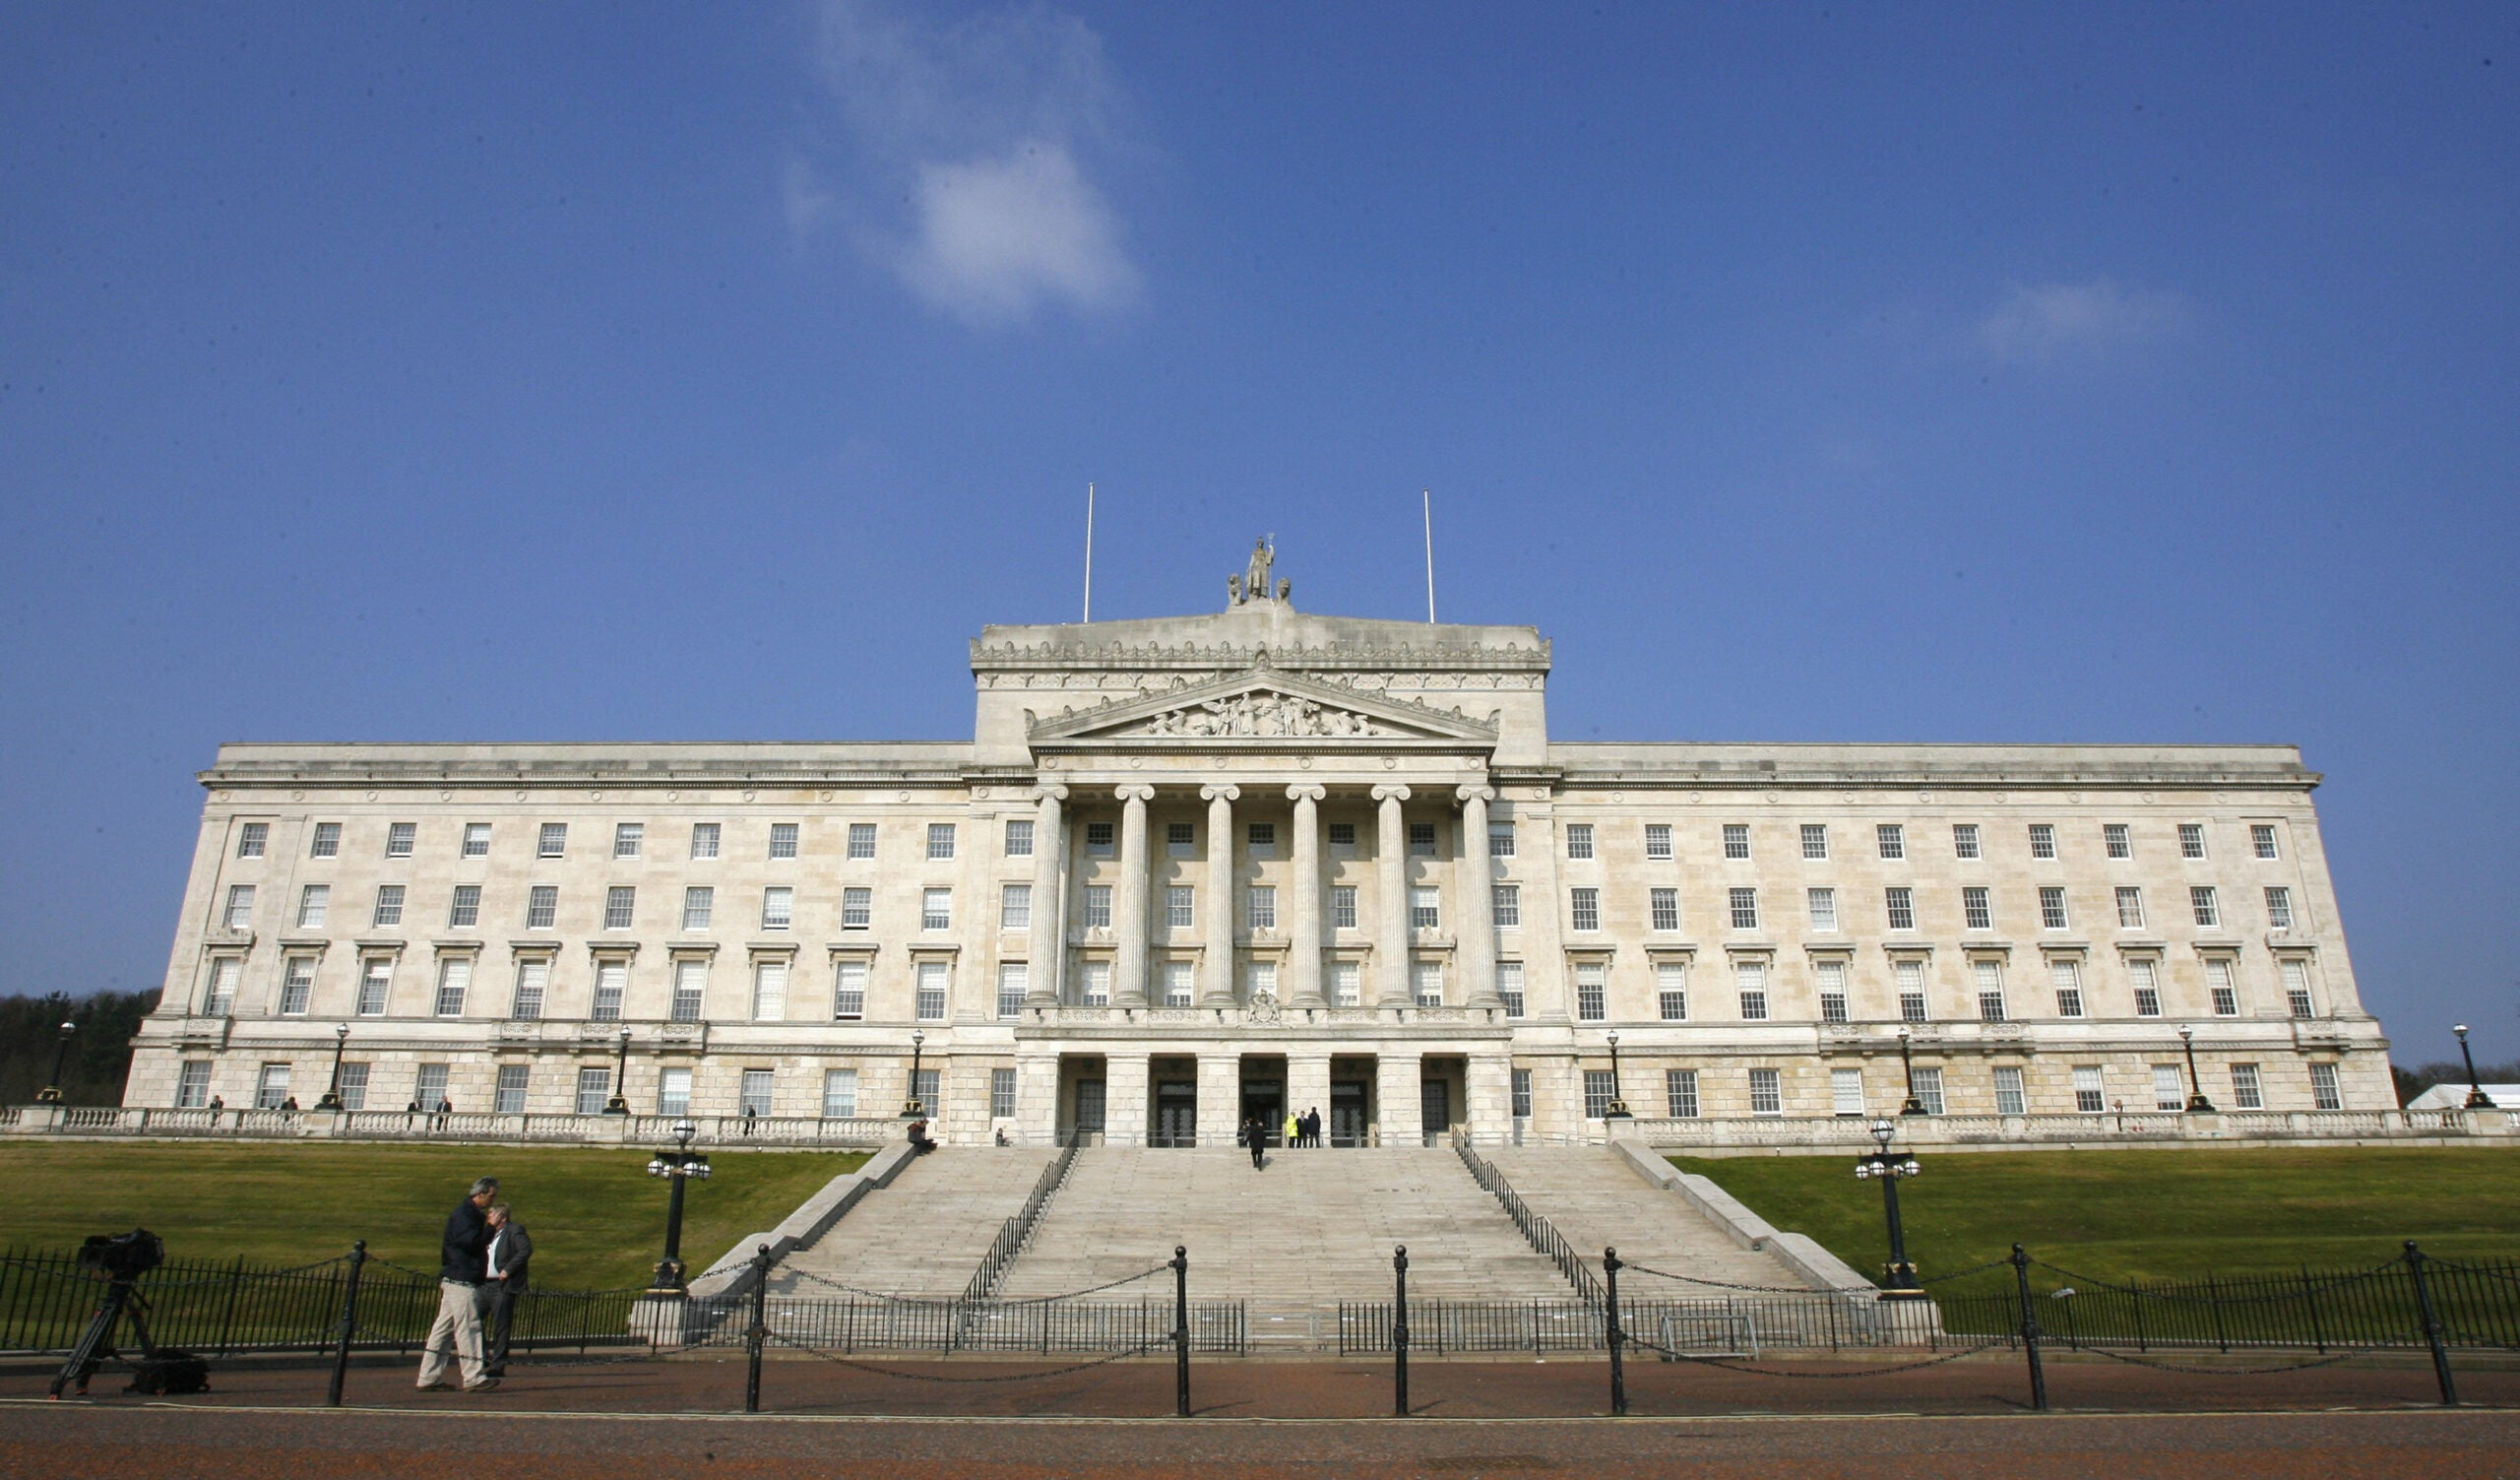 Without a government, Northern Ireland's nurses are still living through austerity